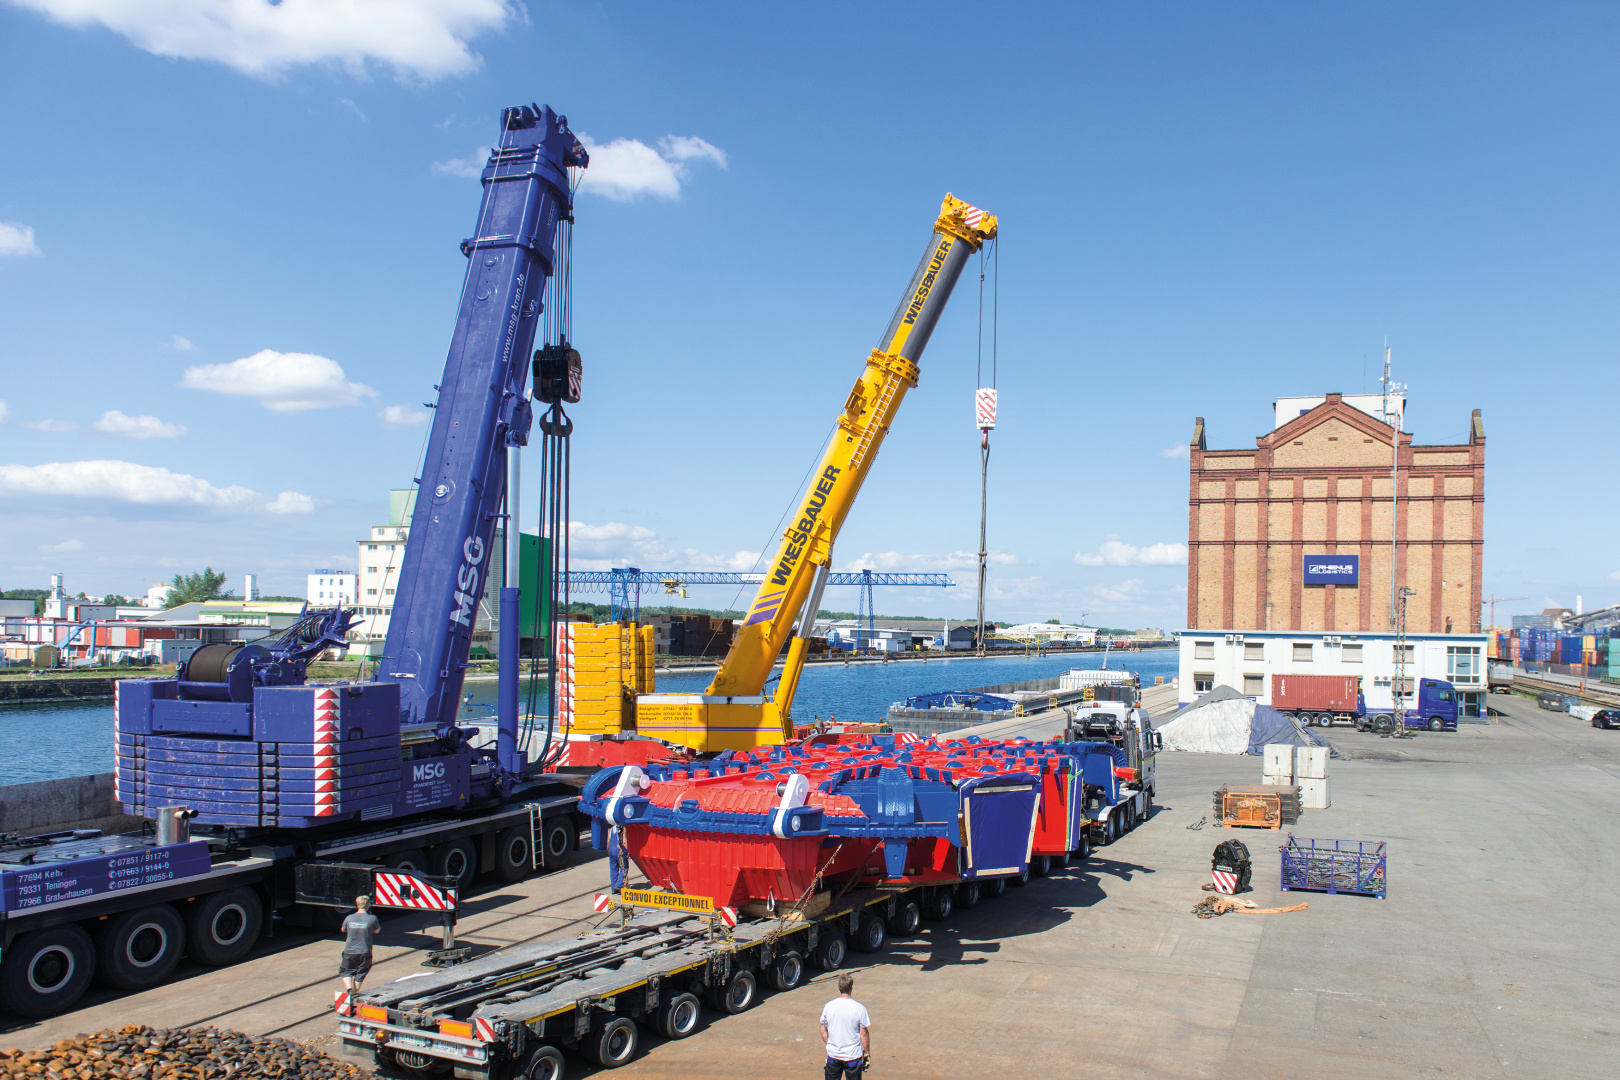 Loading a heavyweight cutting wheel segment onto a transport vessel in the Port of Kehl, Germany